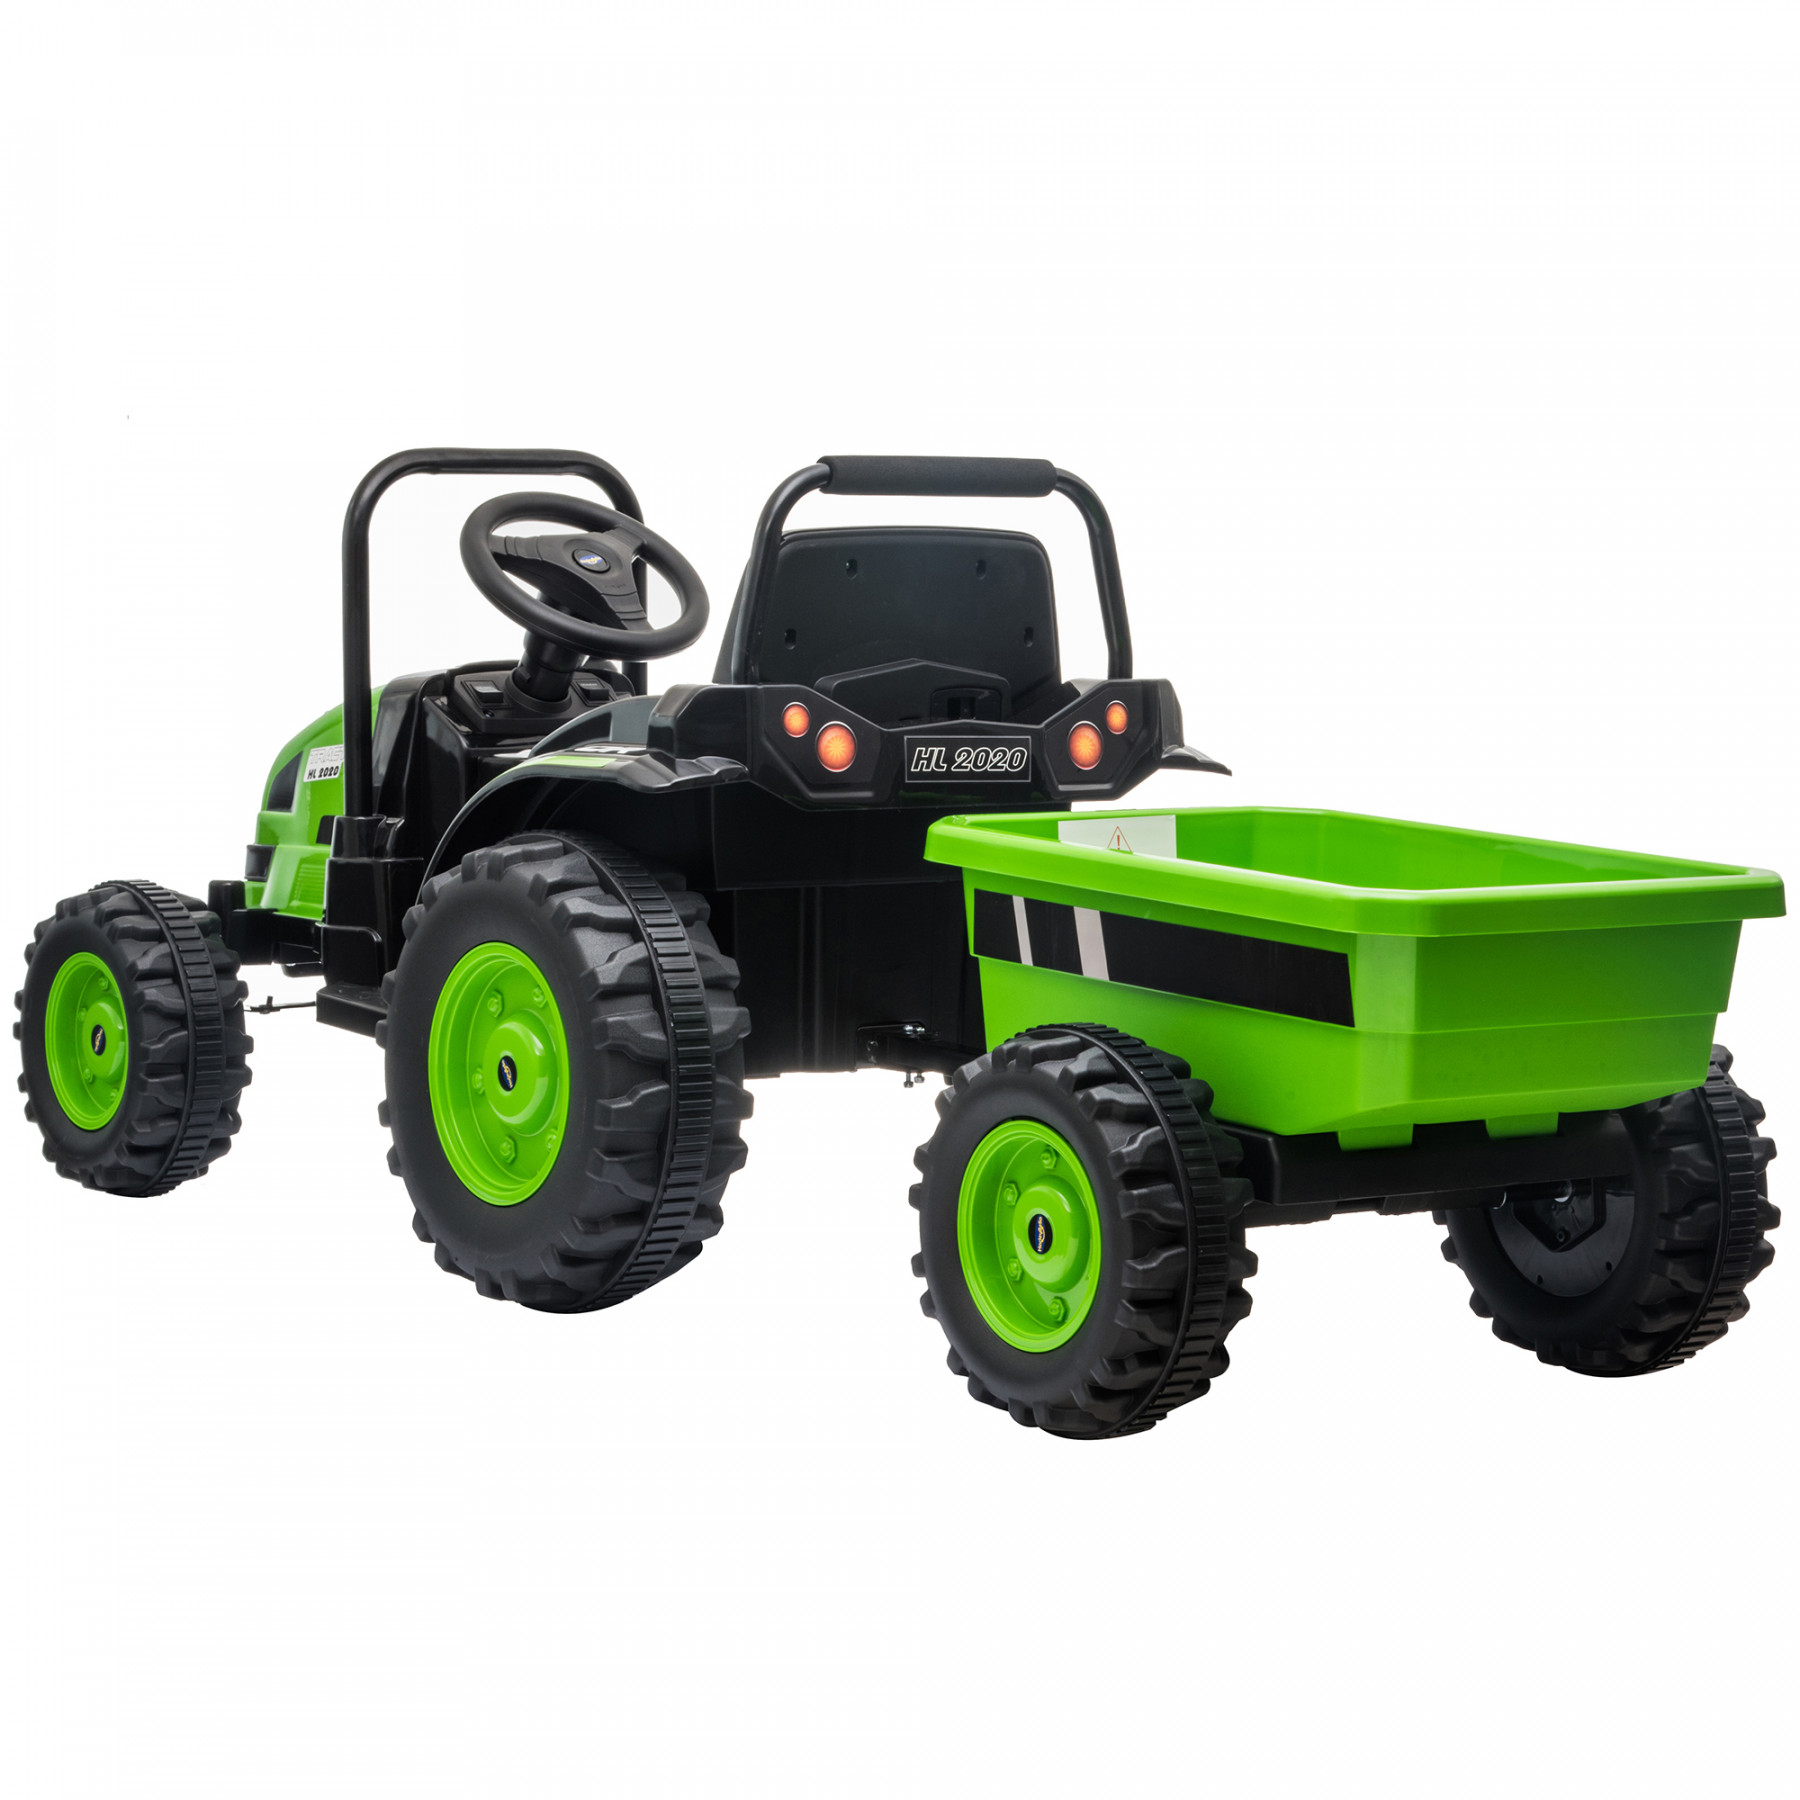 Xtreme 12V Ride on Electric Tractor With Trailer And 2.4G Remote Control Green